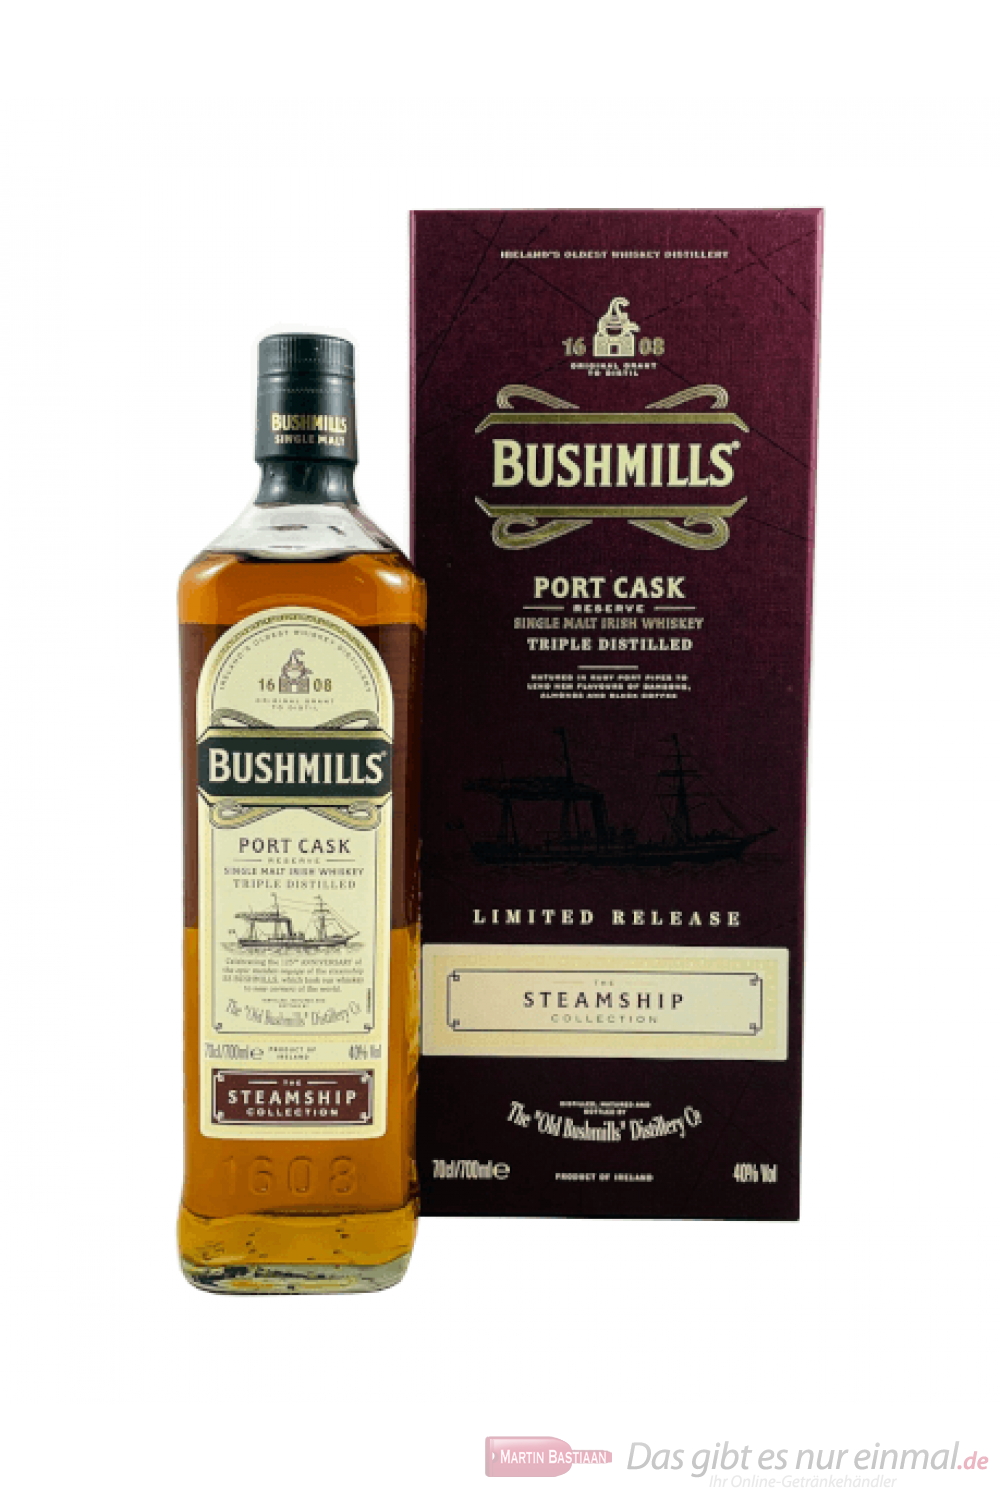 Bushmills Steamship Port Cask Single Malt Irish Whiskey 0,7l